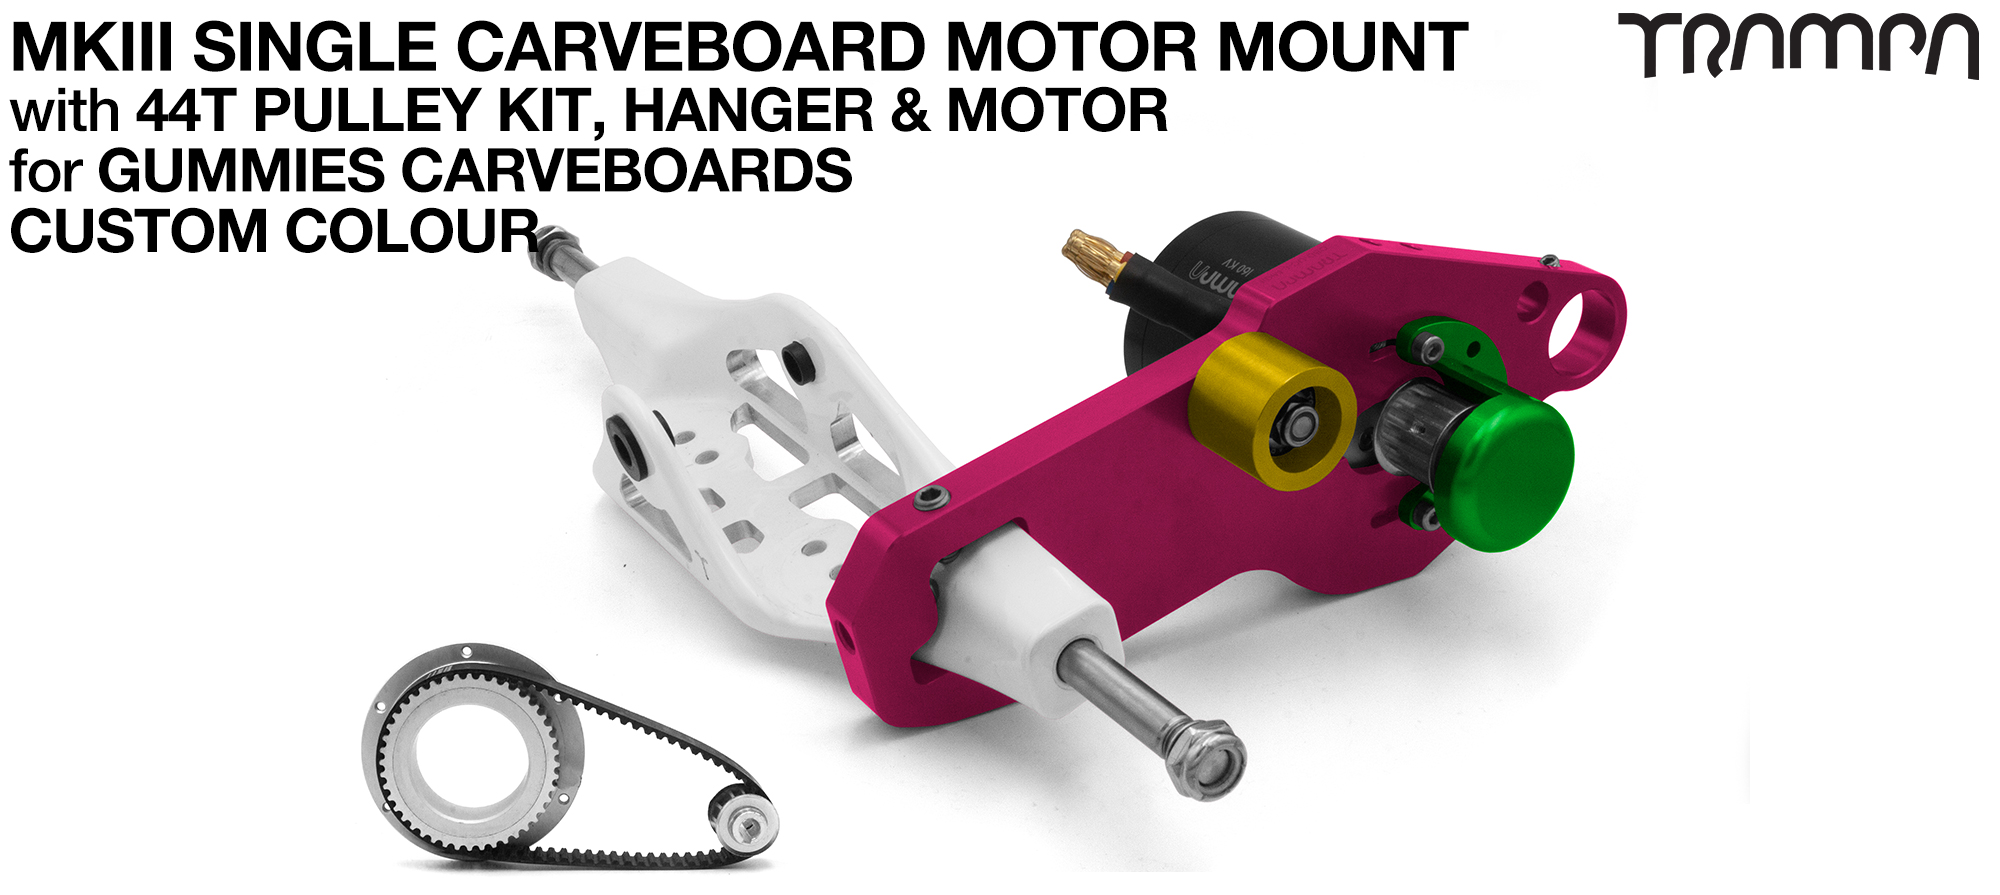 MkIII GUMMIES CARVEBOARD Motormount on a Mini HANGER with 44 Tooth Pulley Kit & Motor - SINGLE